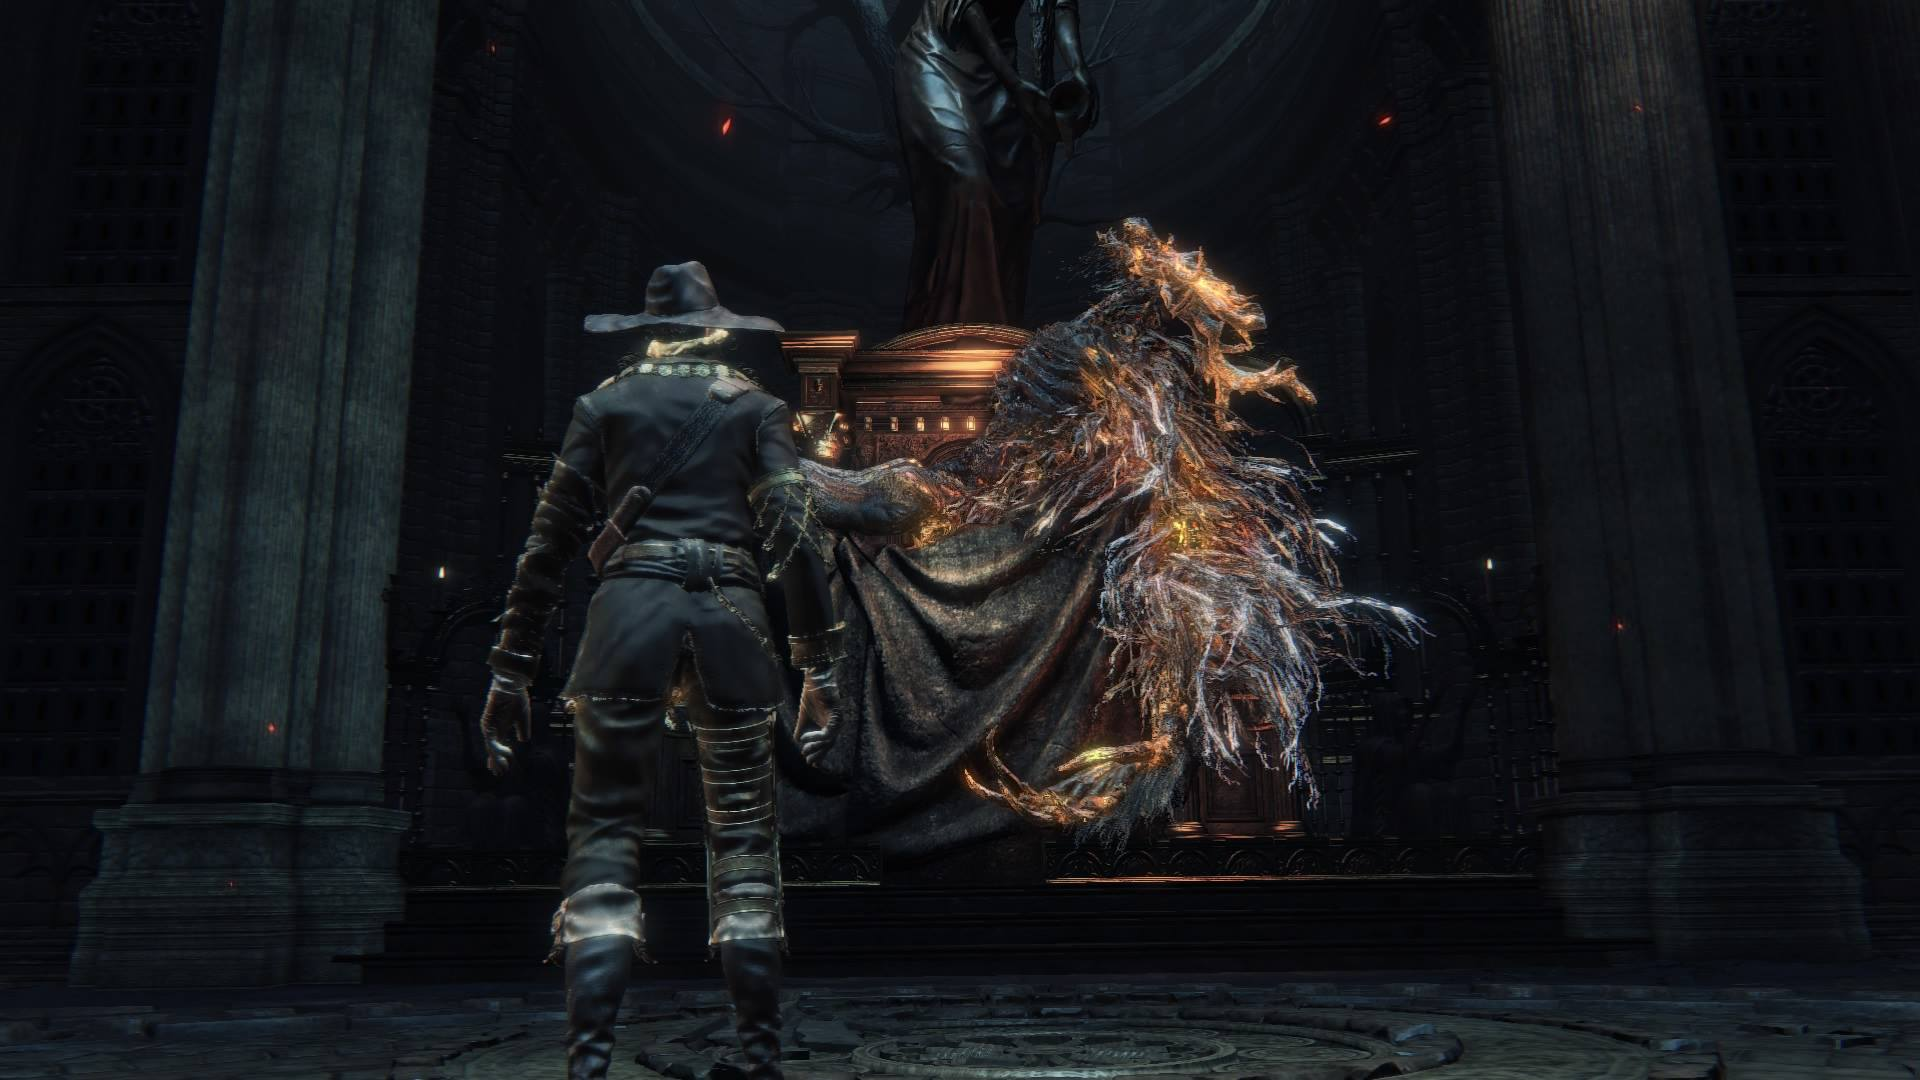 Home Design Ds Game Bloodborne Guide Awaken Laurence And Become The Beast